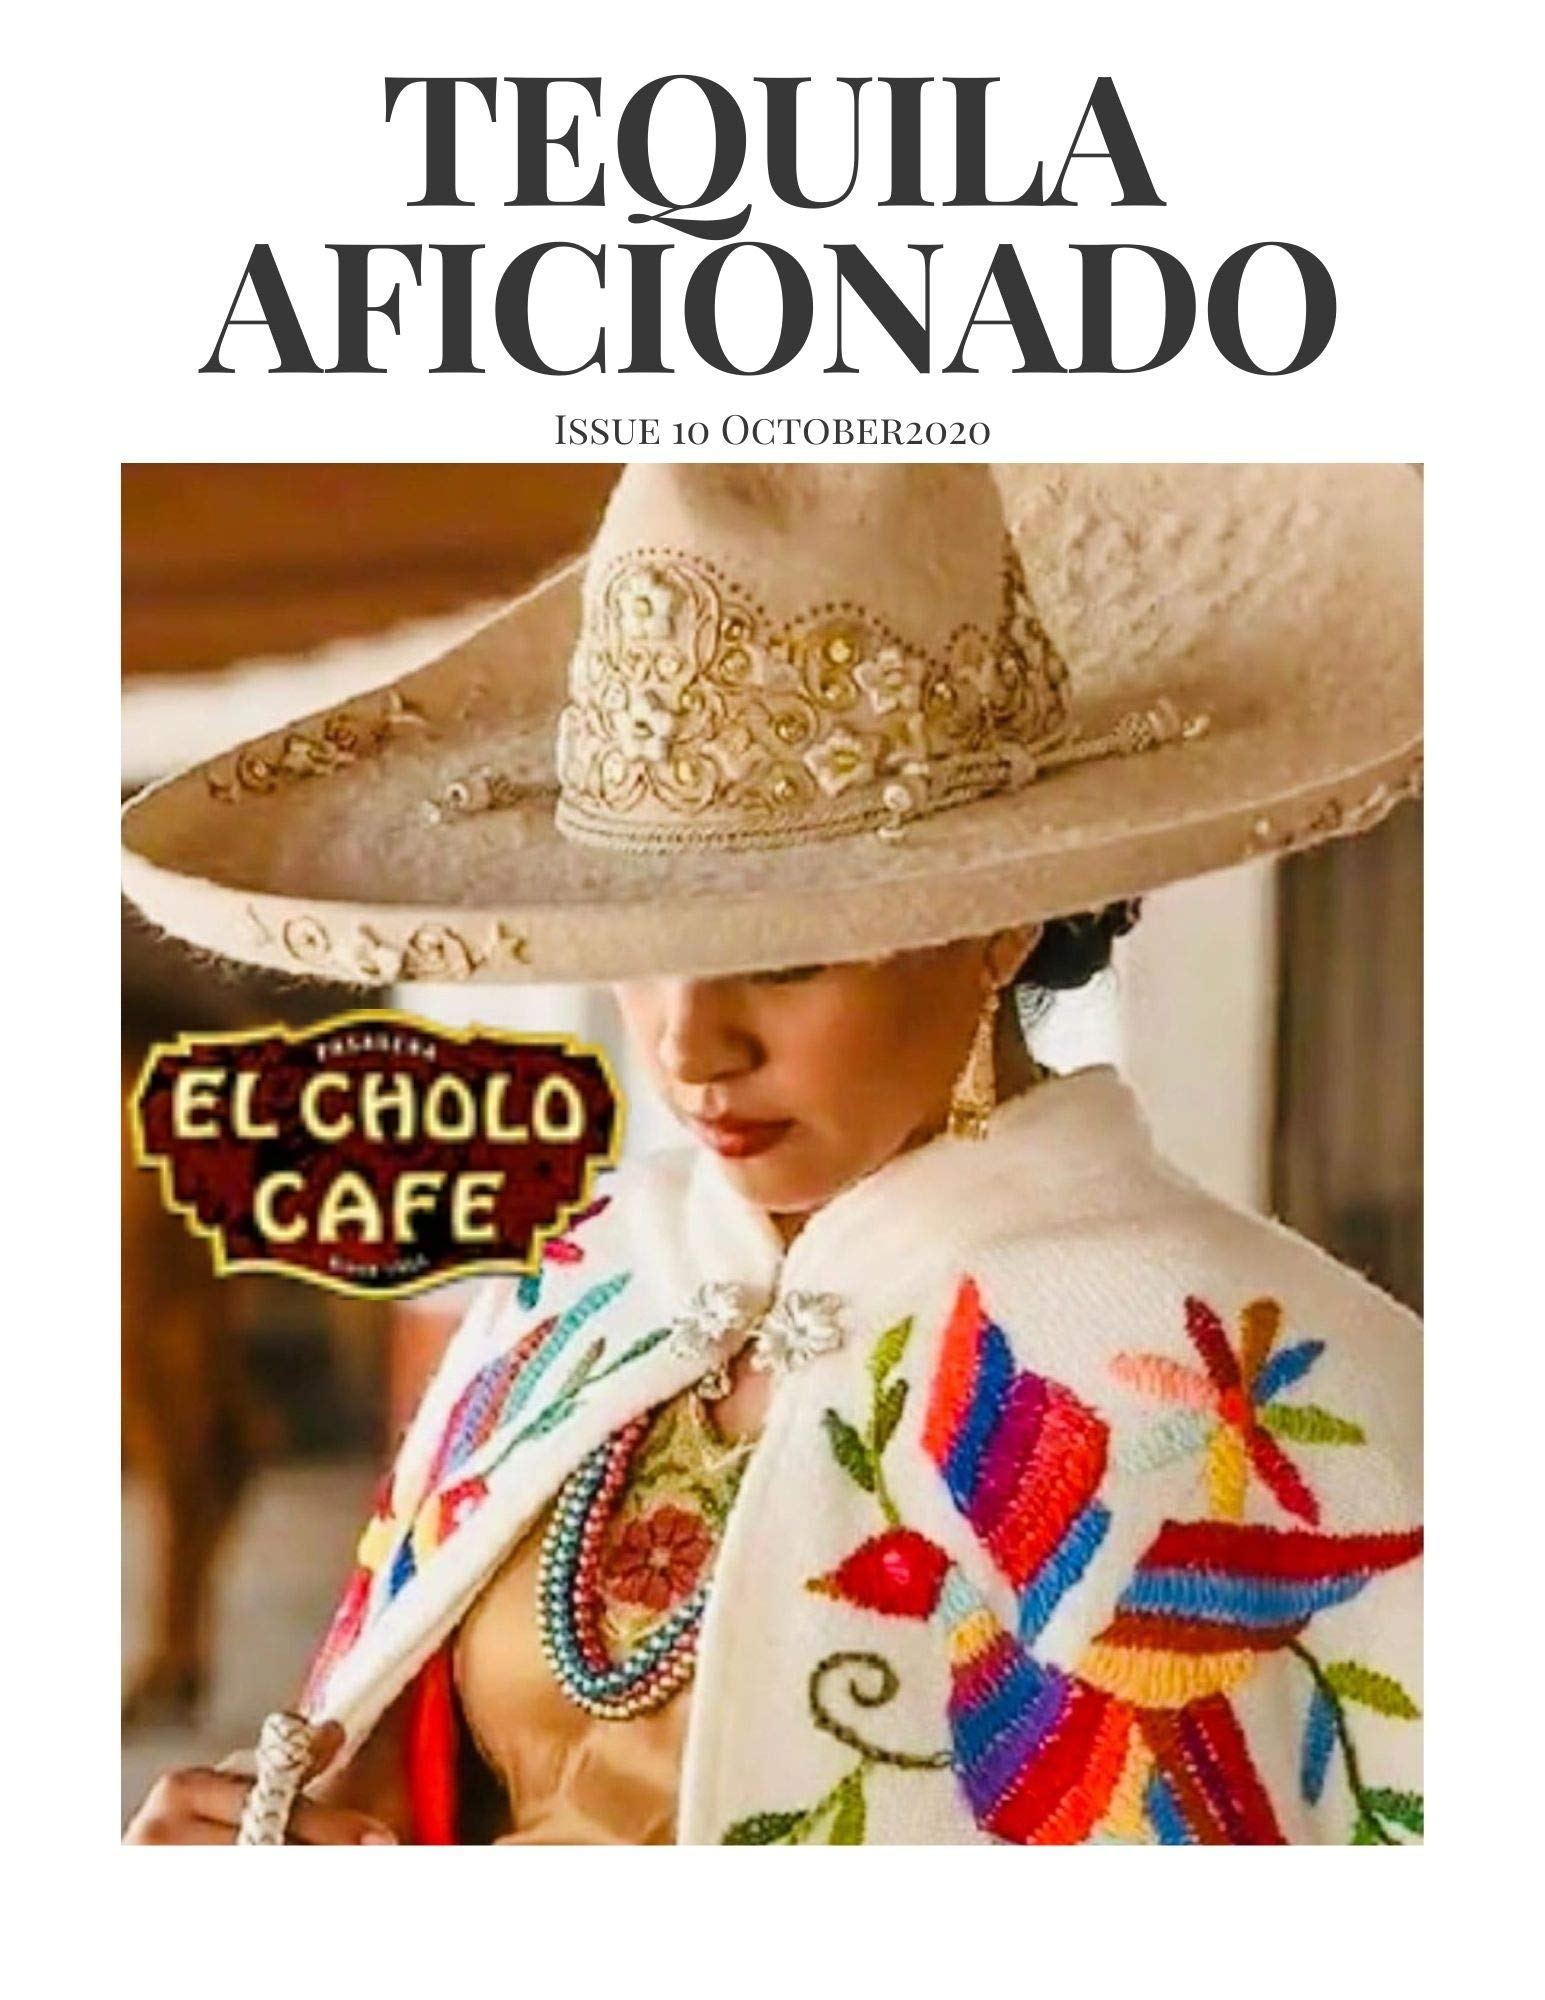 Tequila Aficionado Magazine October 2020: The Only Direct to Consumer Magazine Specializing in Tequila, Mezcal, Sotol, Bacanora, Raicilla and Agave Spirits